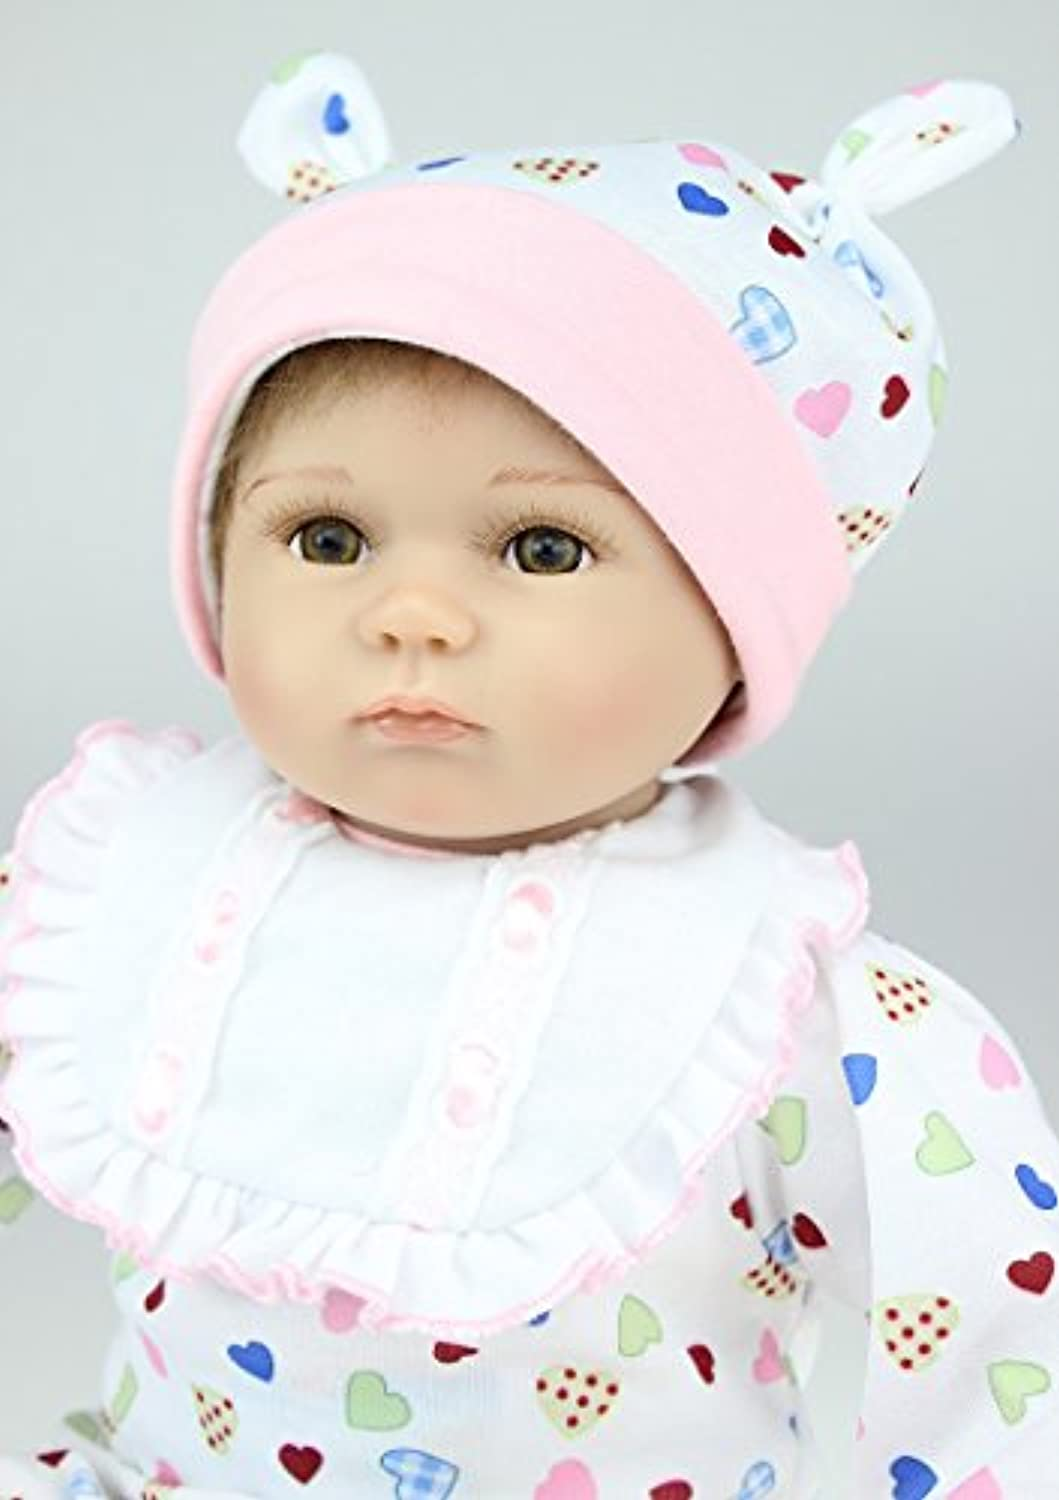 GeShuo Reborn Baby Doll Soft Silicone Vinyl 17 inch Lifelike Baby Boy Girl Toy Beautiful clothes doll 42 cm Hots